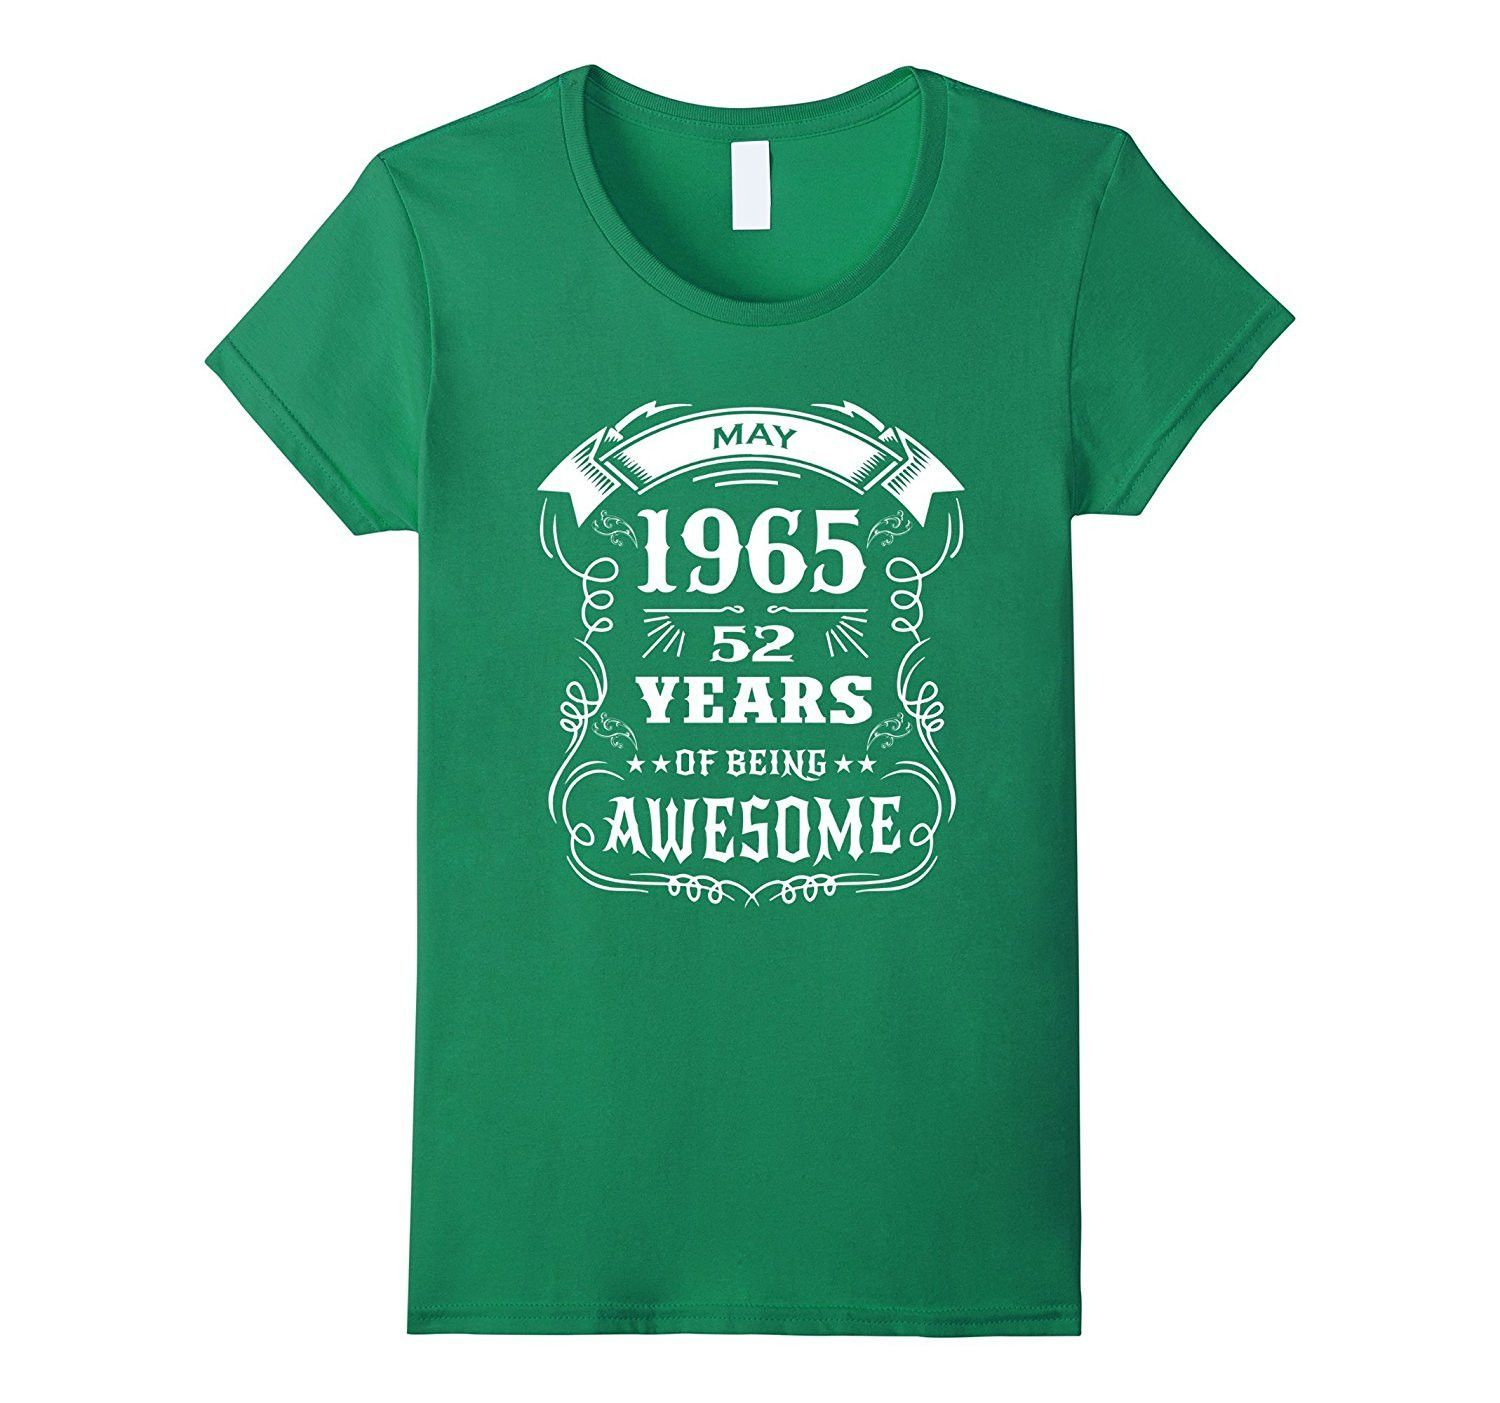 Born in May 1965 52 years of being awesome T-Shirt